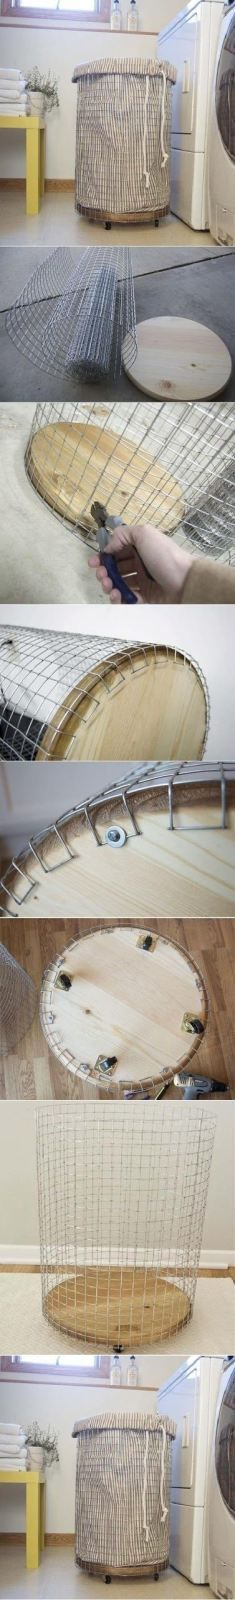 Cheap & Chic: How To Make a French-Vintage-Inspired Wire Hamper - DIY wire laundry basket La mejor imagen sobre diy face mask para tu gusto Estás buscando algo y no - Diy Projects To Try, Home Projects, Crafts To Make, Weekend Projects, Home Crafts, Diy Home Decor, Diy Crafts, Crafts Cheap, Diy Casa